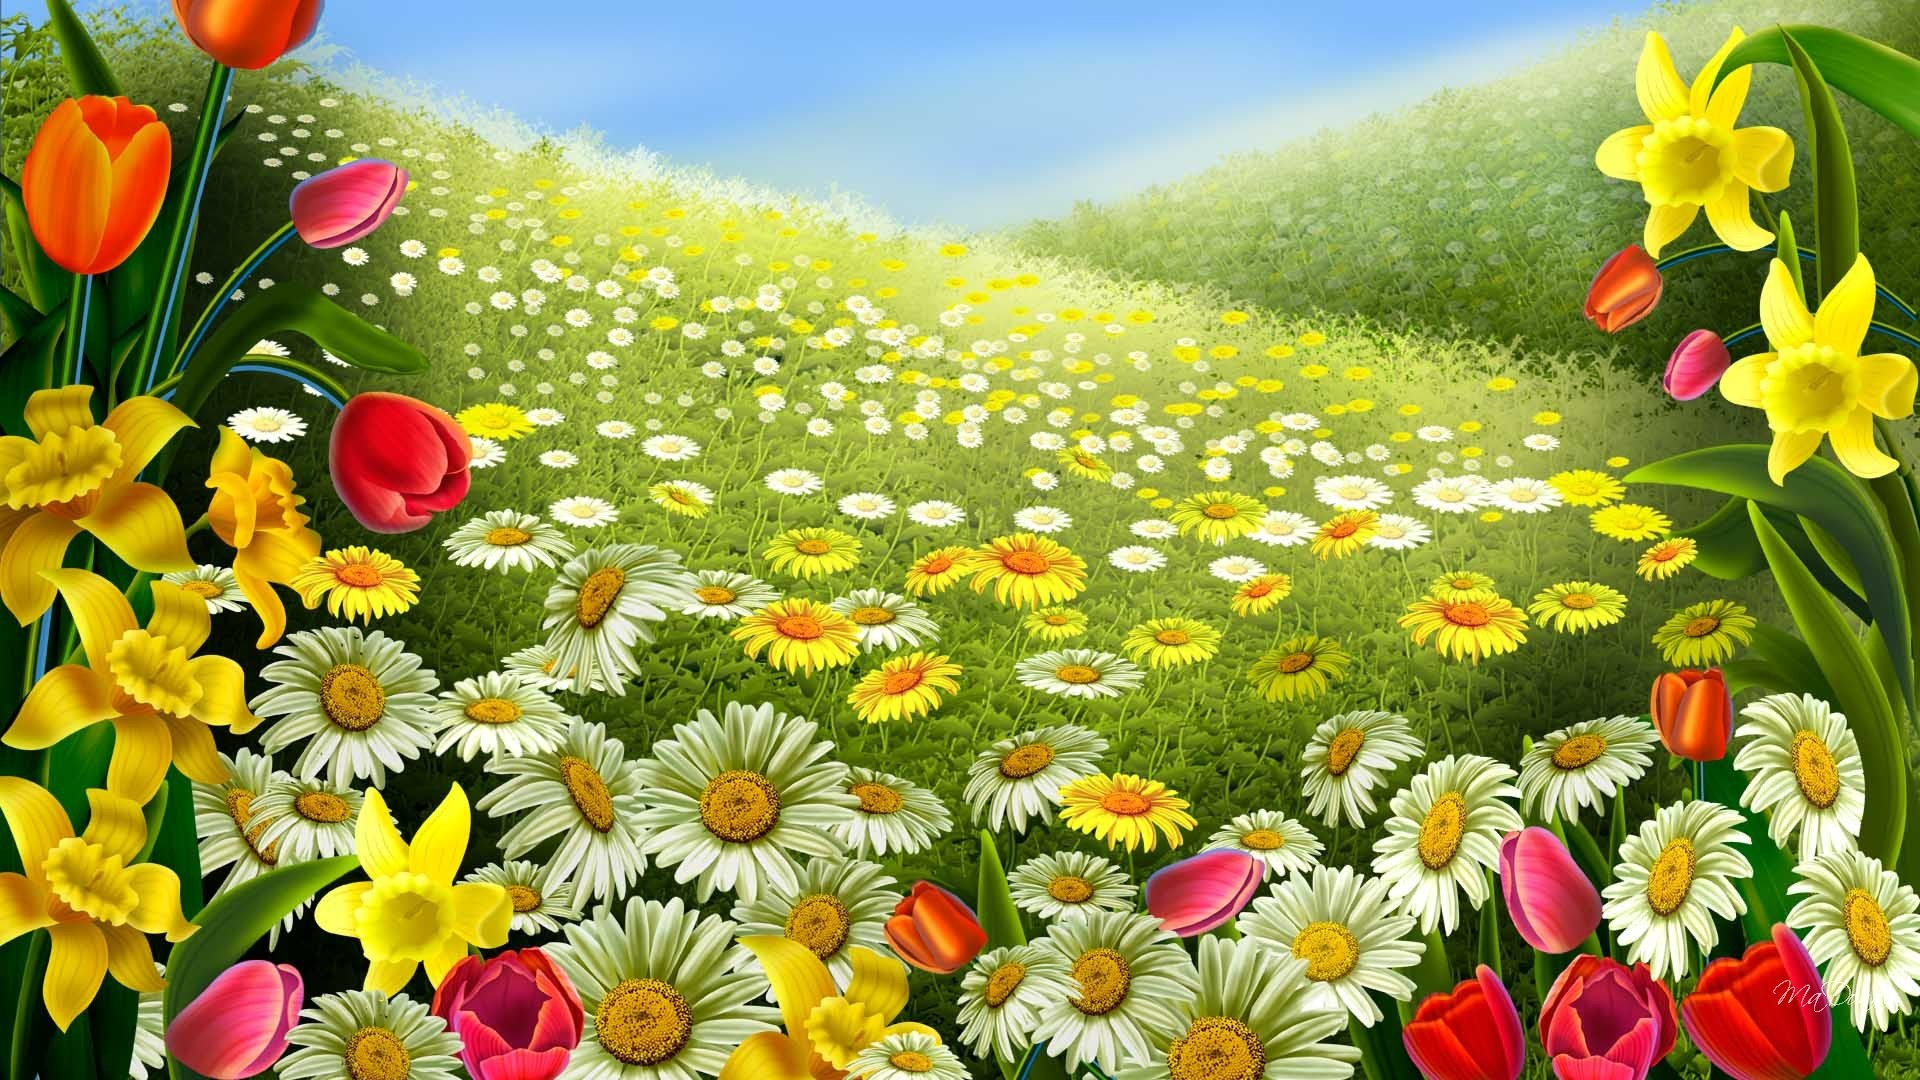 Springtime Animals And Flowers Wallpaper 67 Images